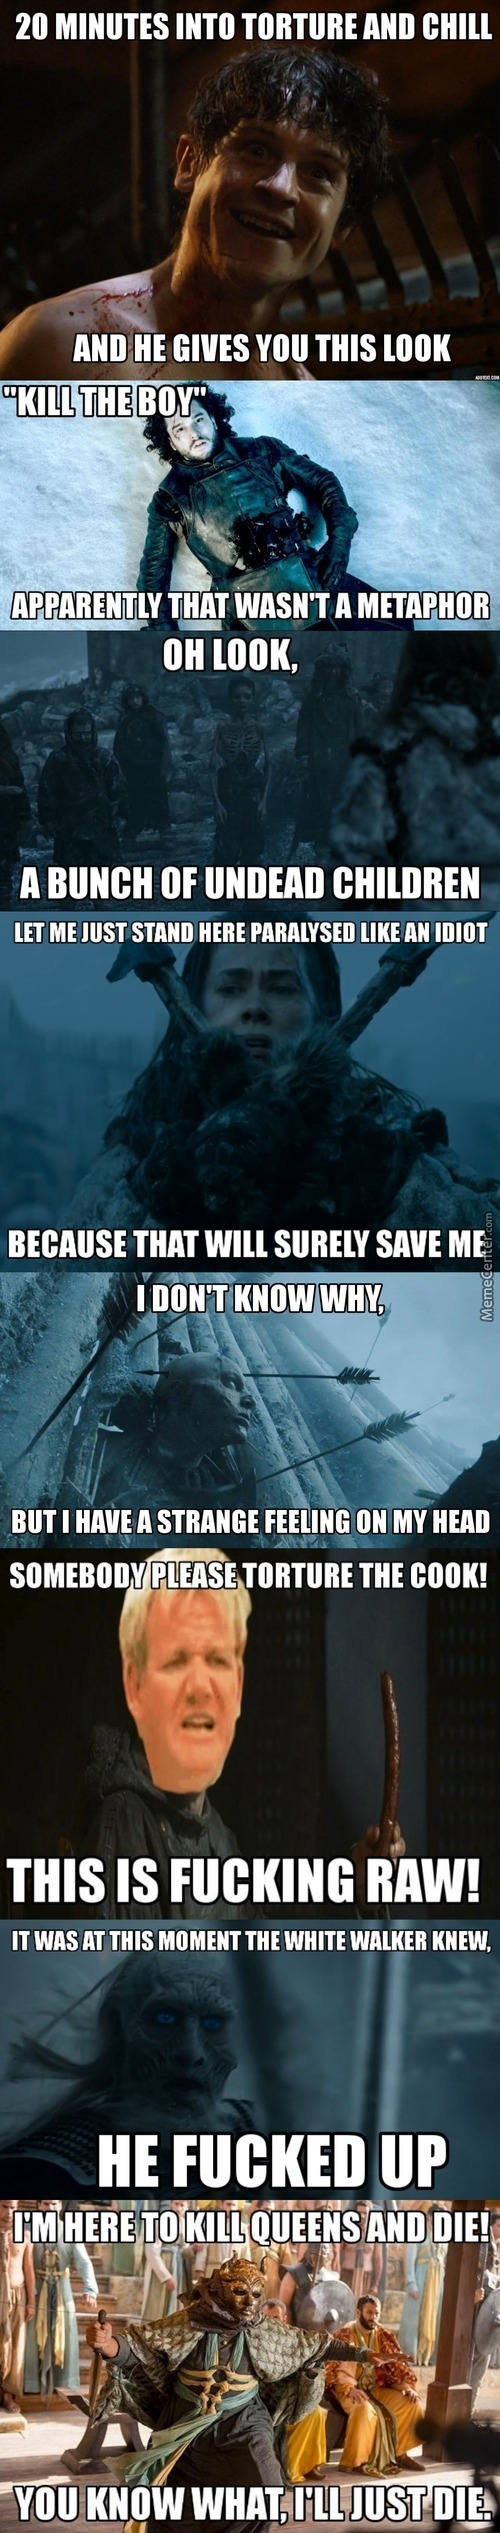 Game Of Thrones, One Of The Best Shows In Existence